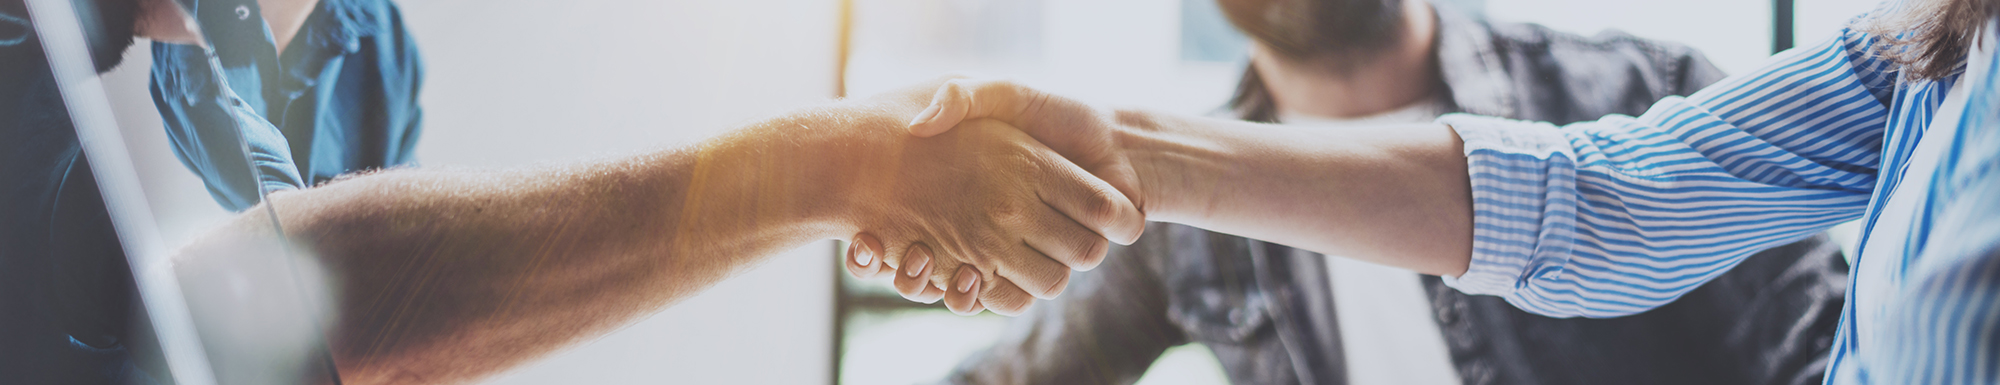 Man and woman shaking hands in business setting